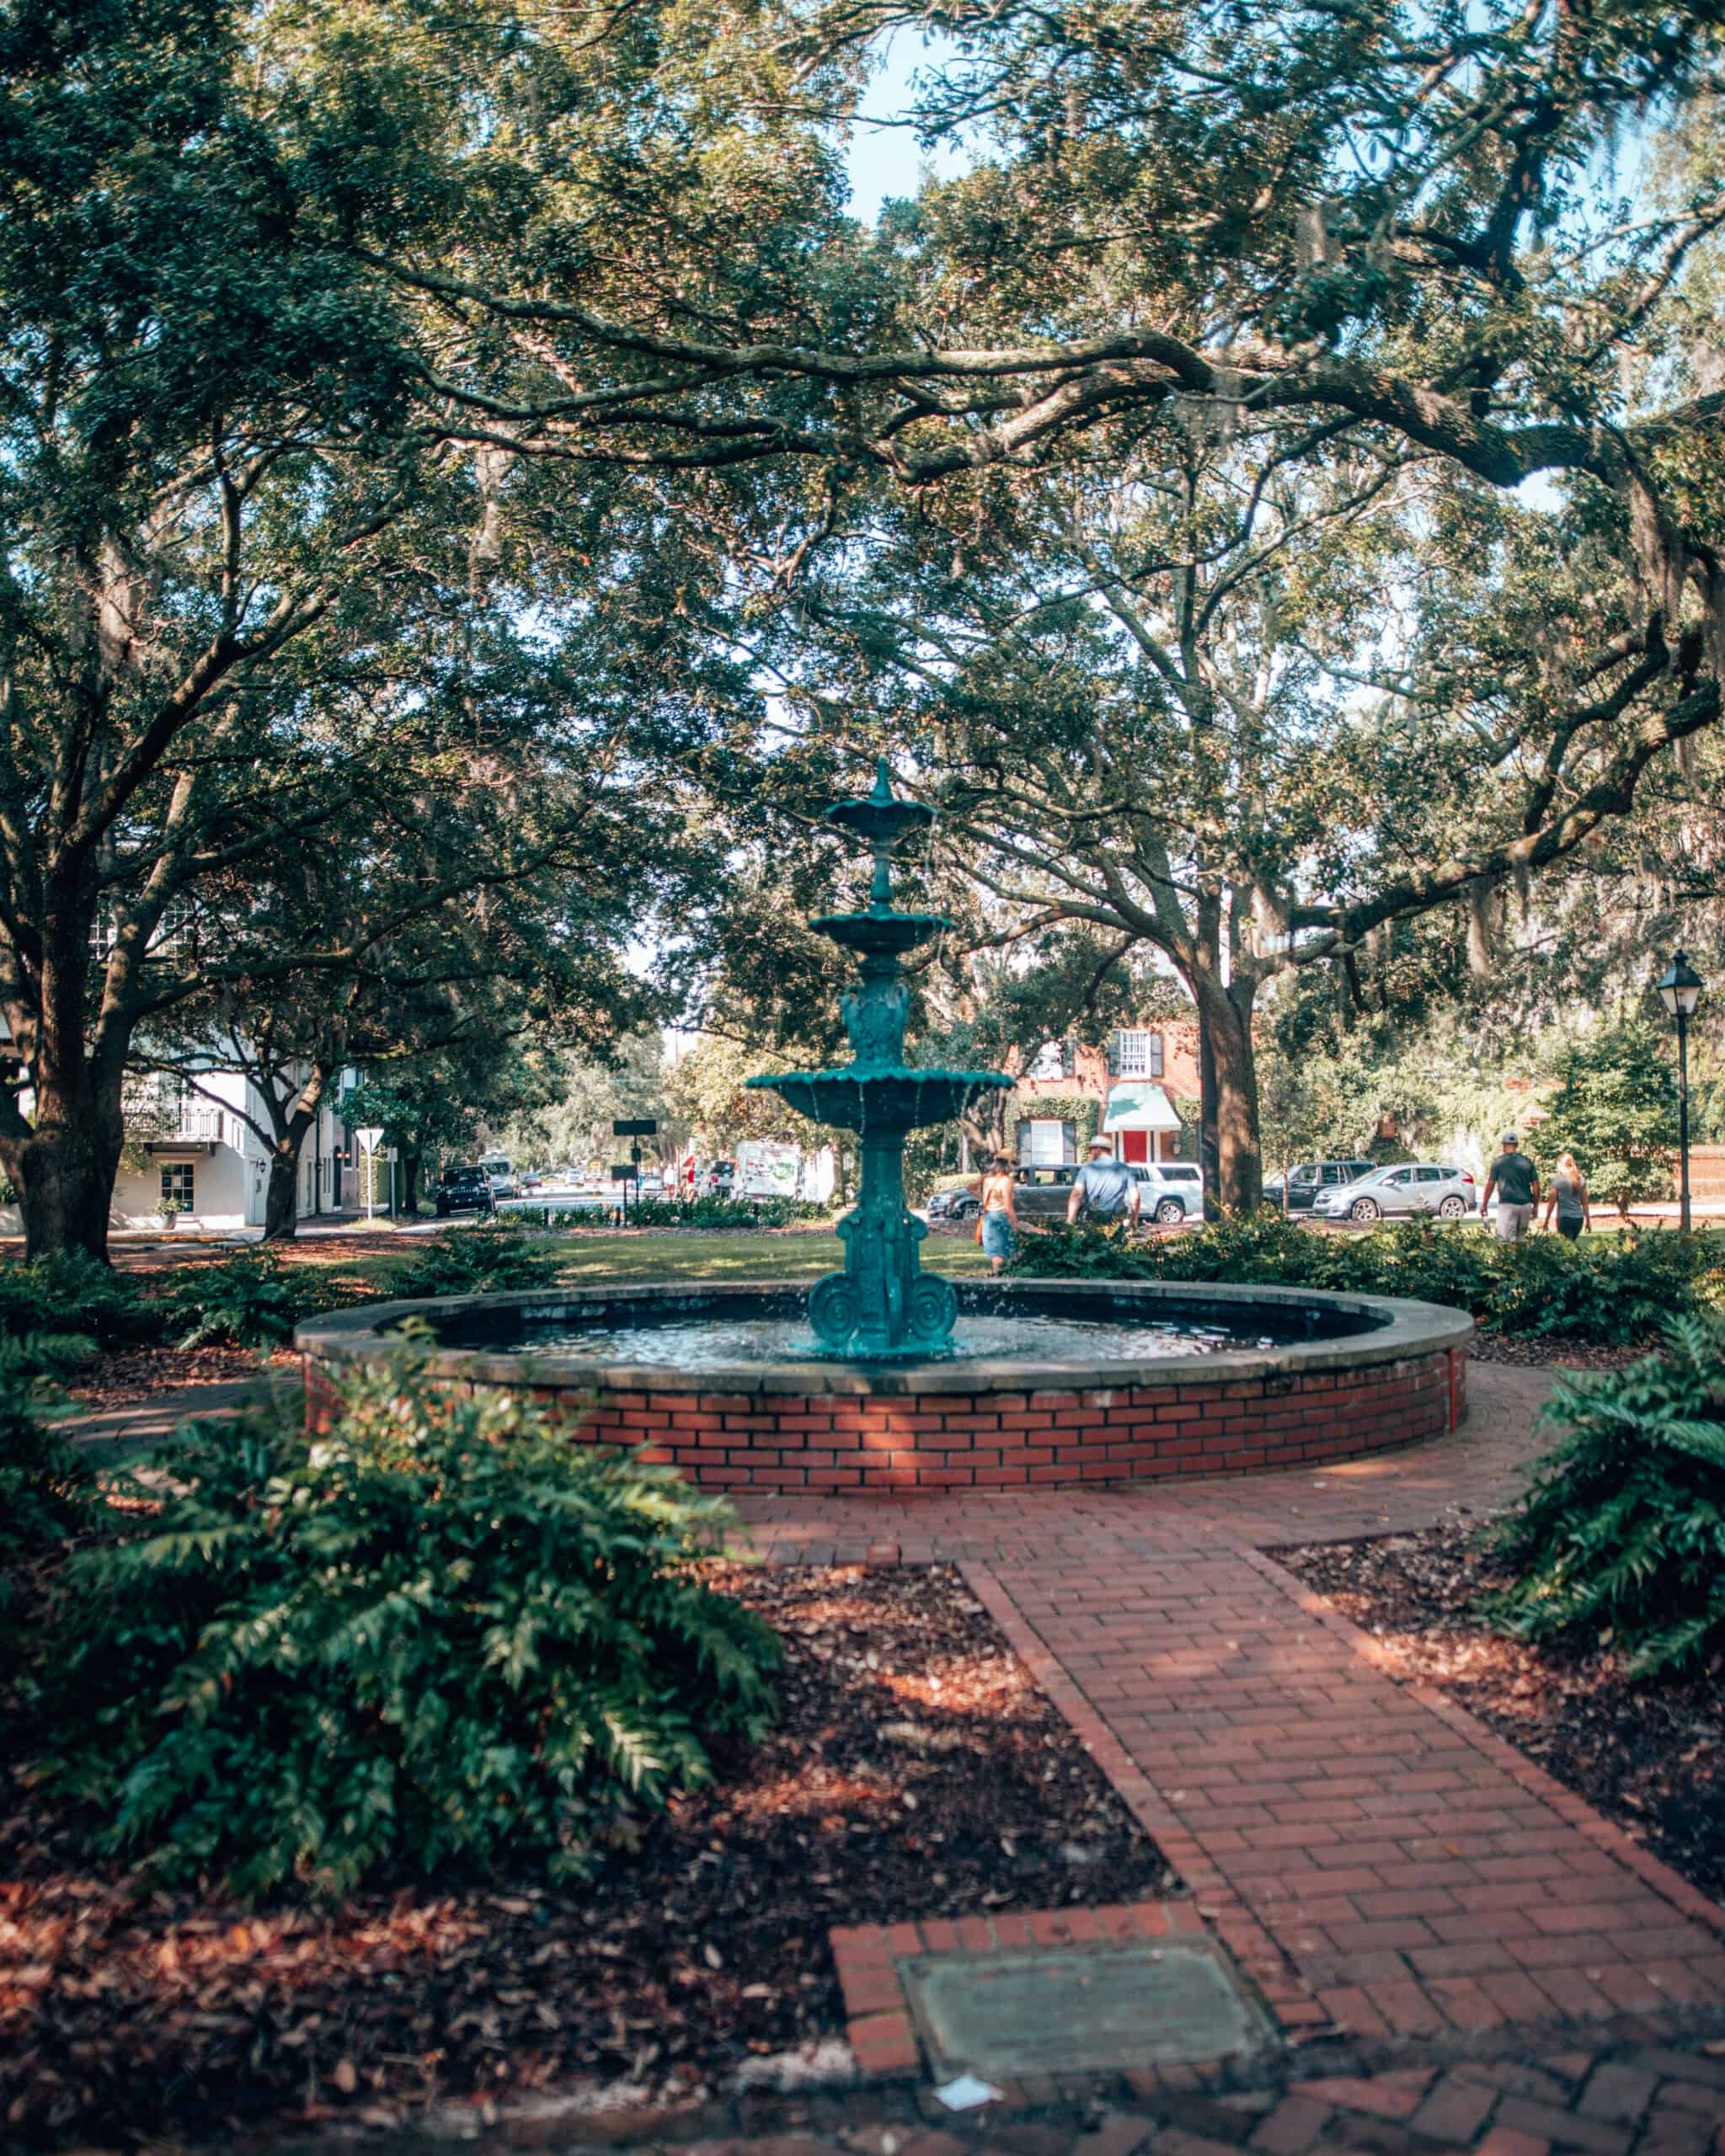 Park in Savannah